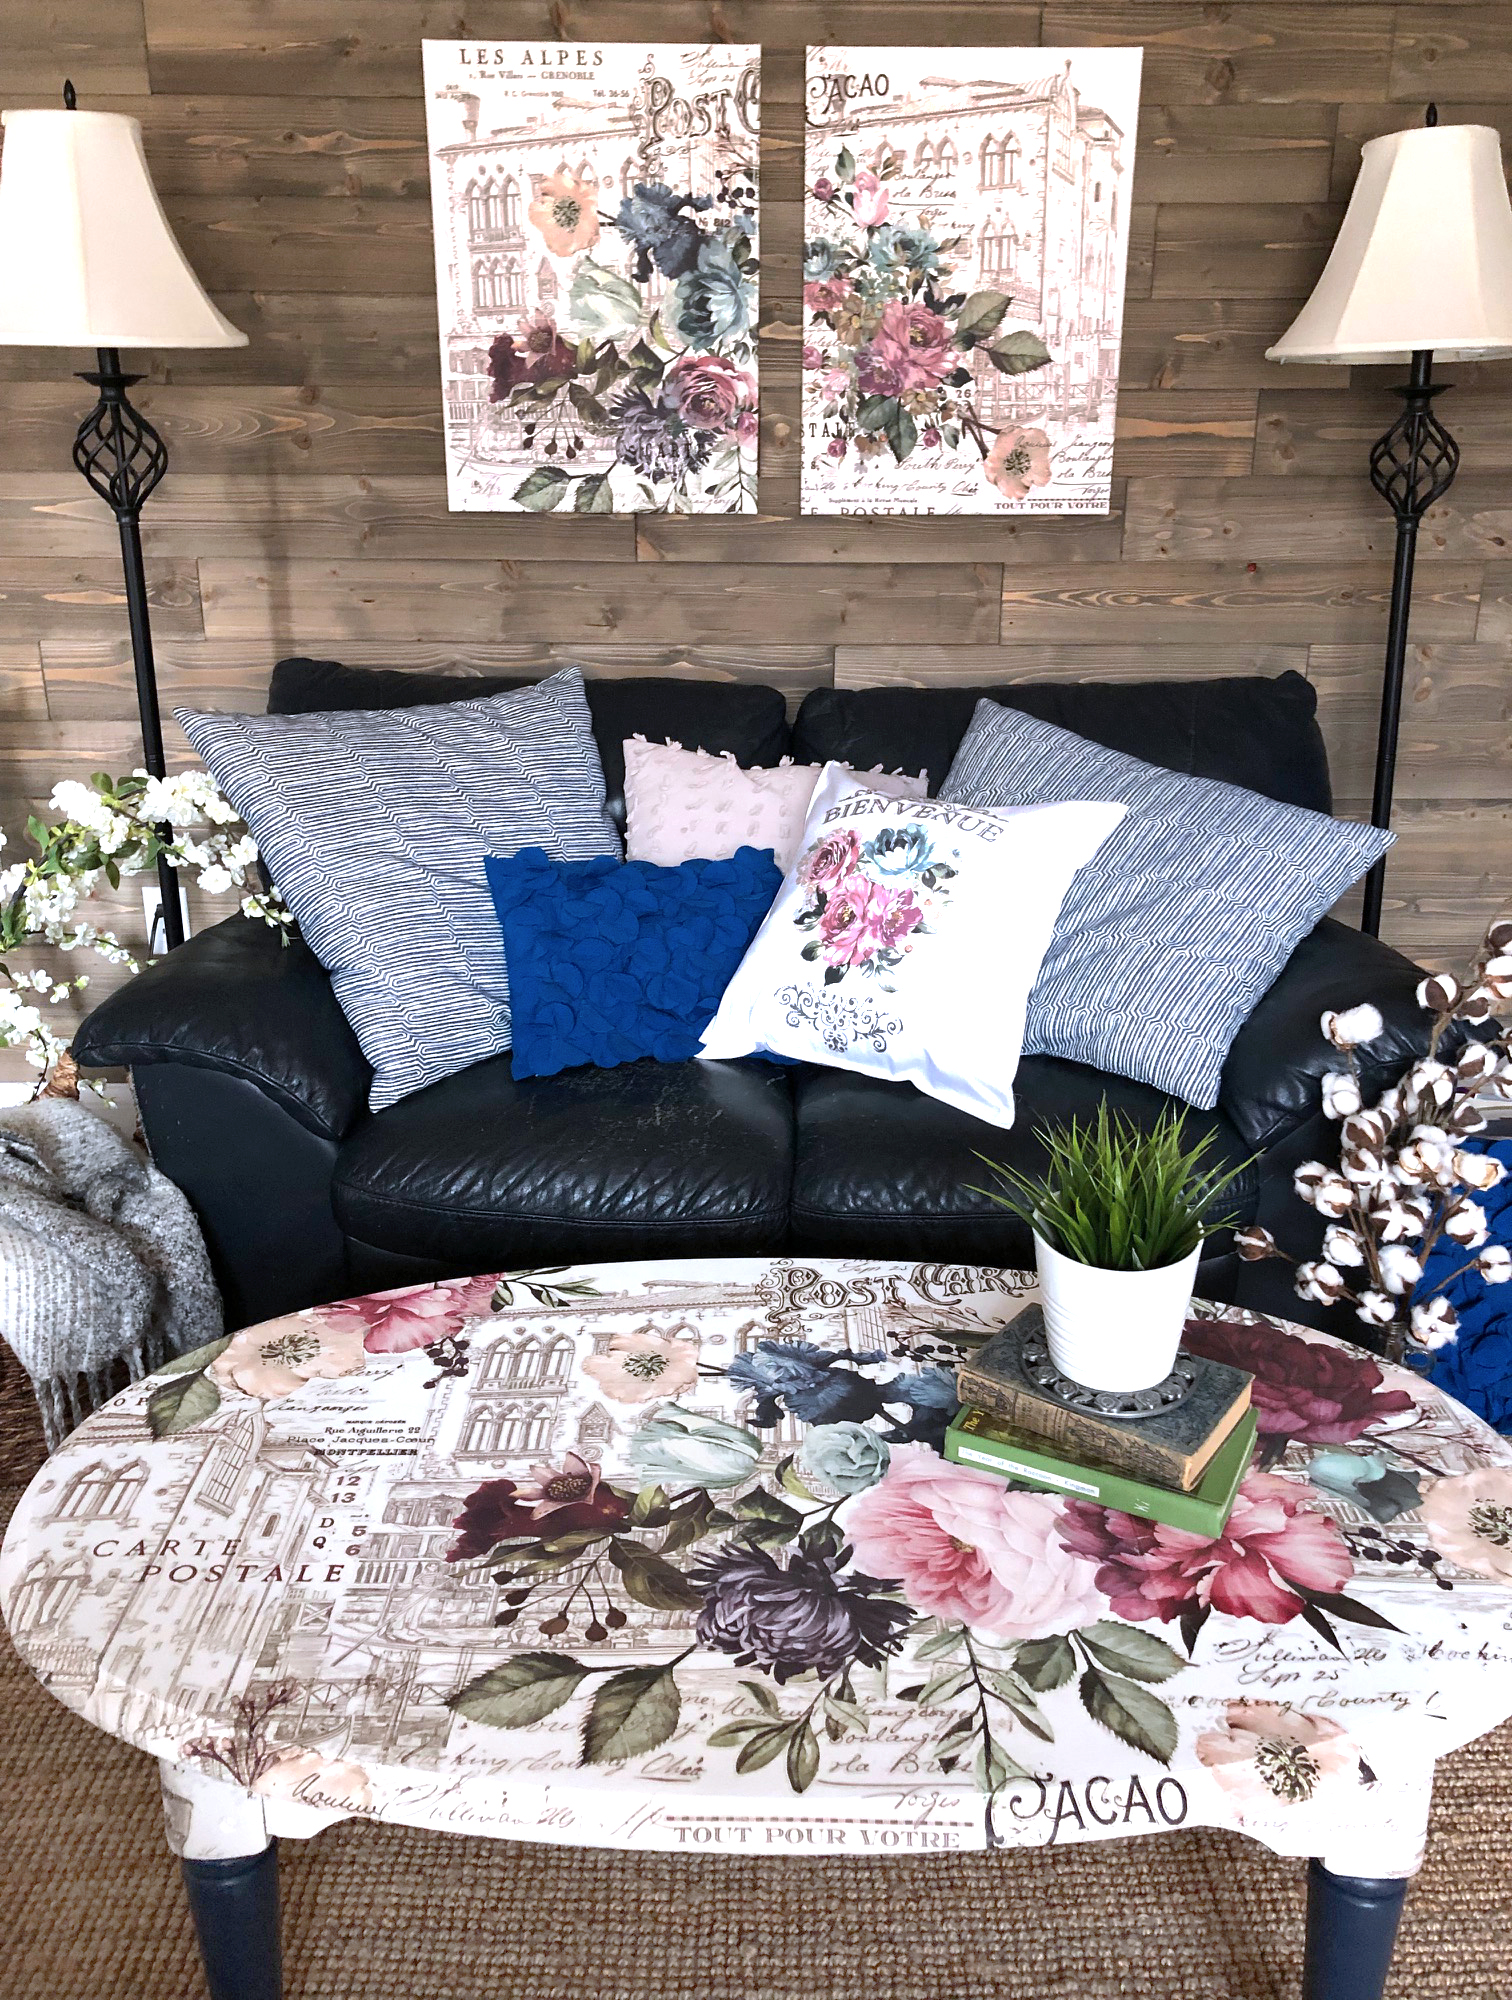 The walls in the Den got a fresh coat of paint and a shiplap accent wall was added. The walls were painted a creamy taupe to give it a fresh look and the color lends itself well for adding most decor accessories as well as accent colors…